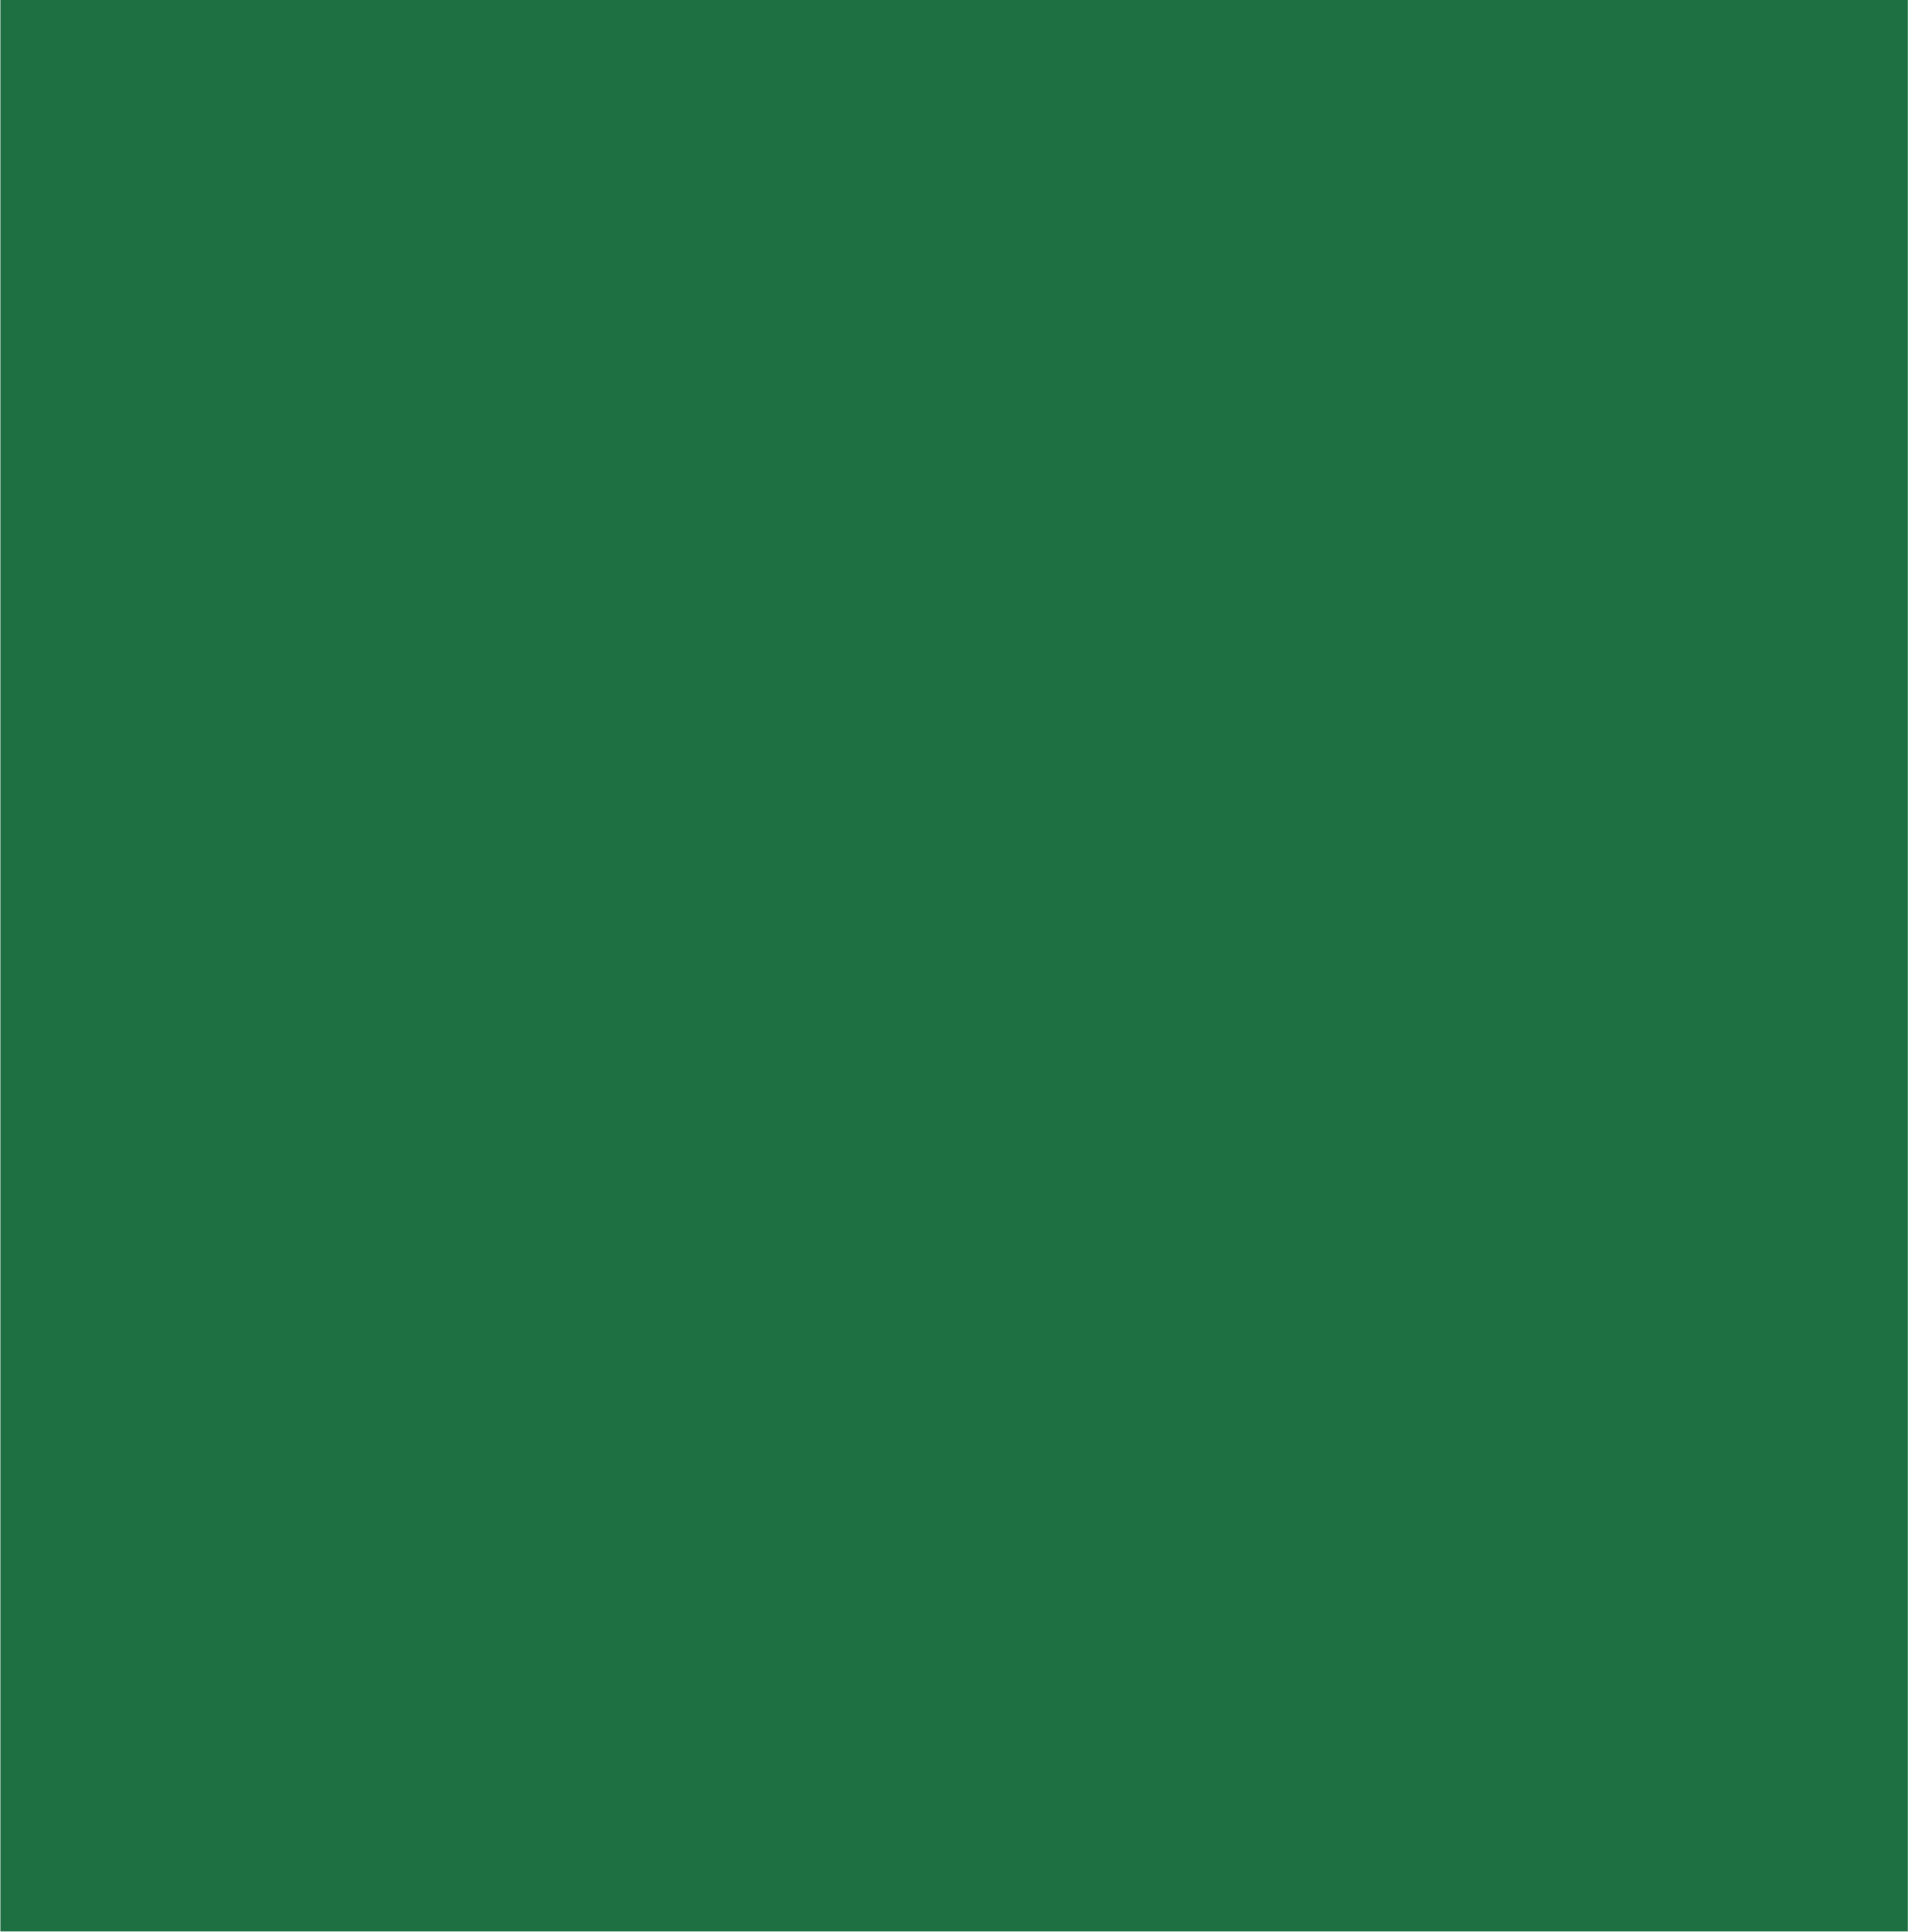 Dark green from the secondary color palette.